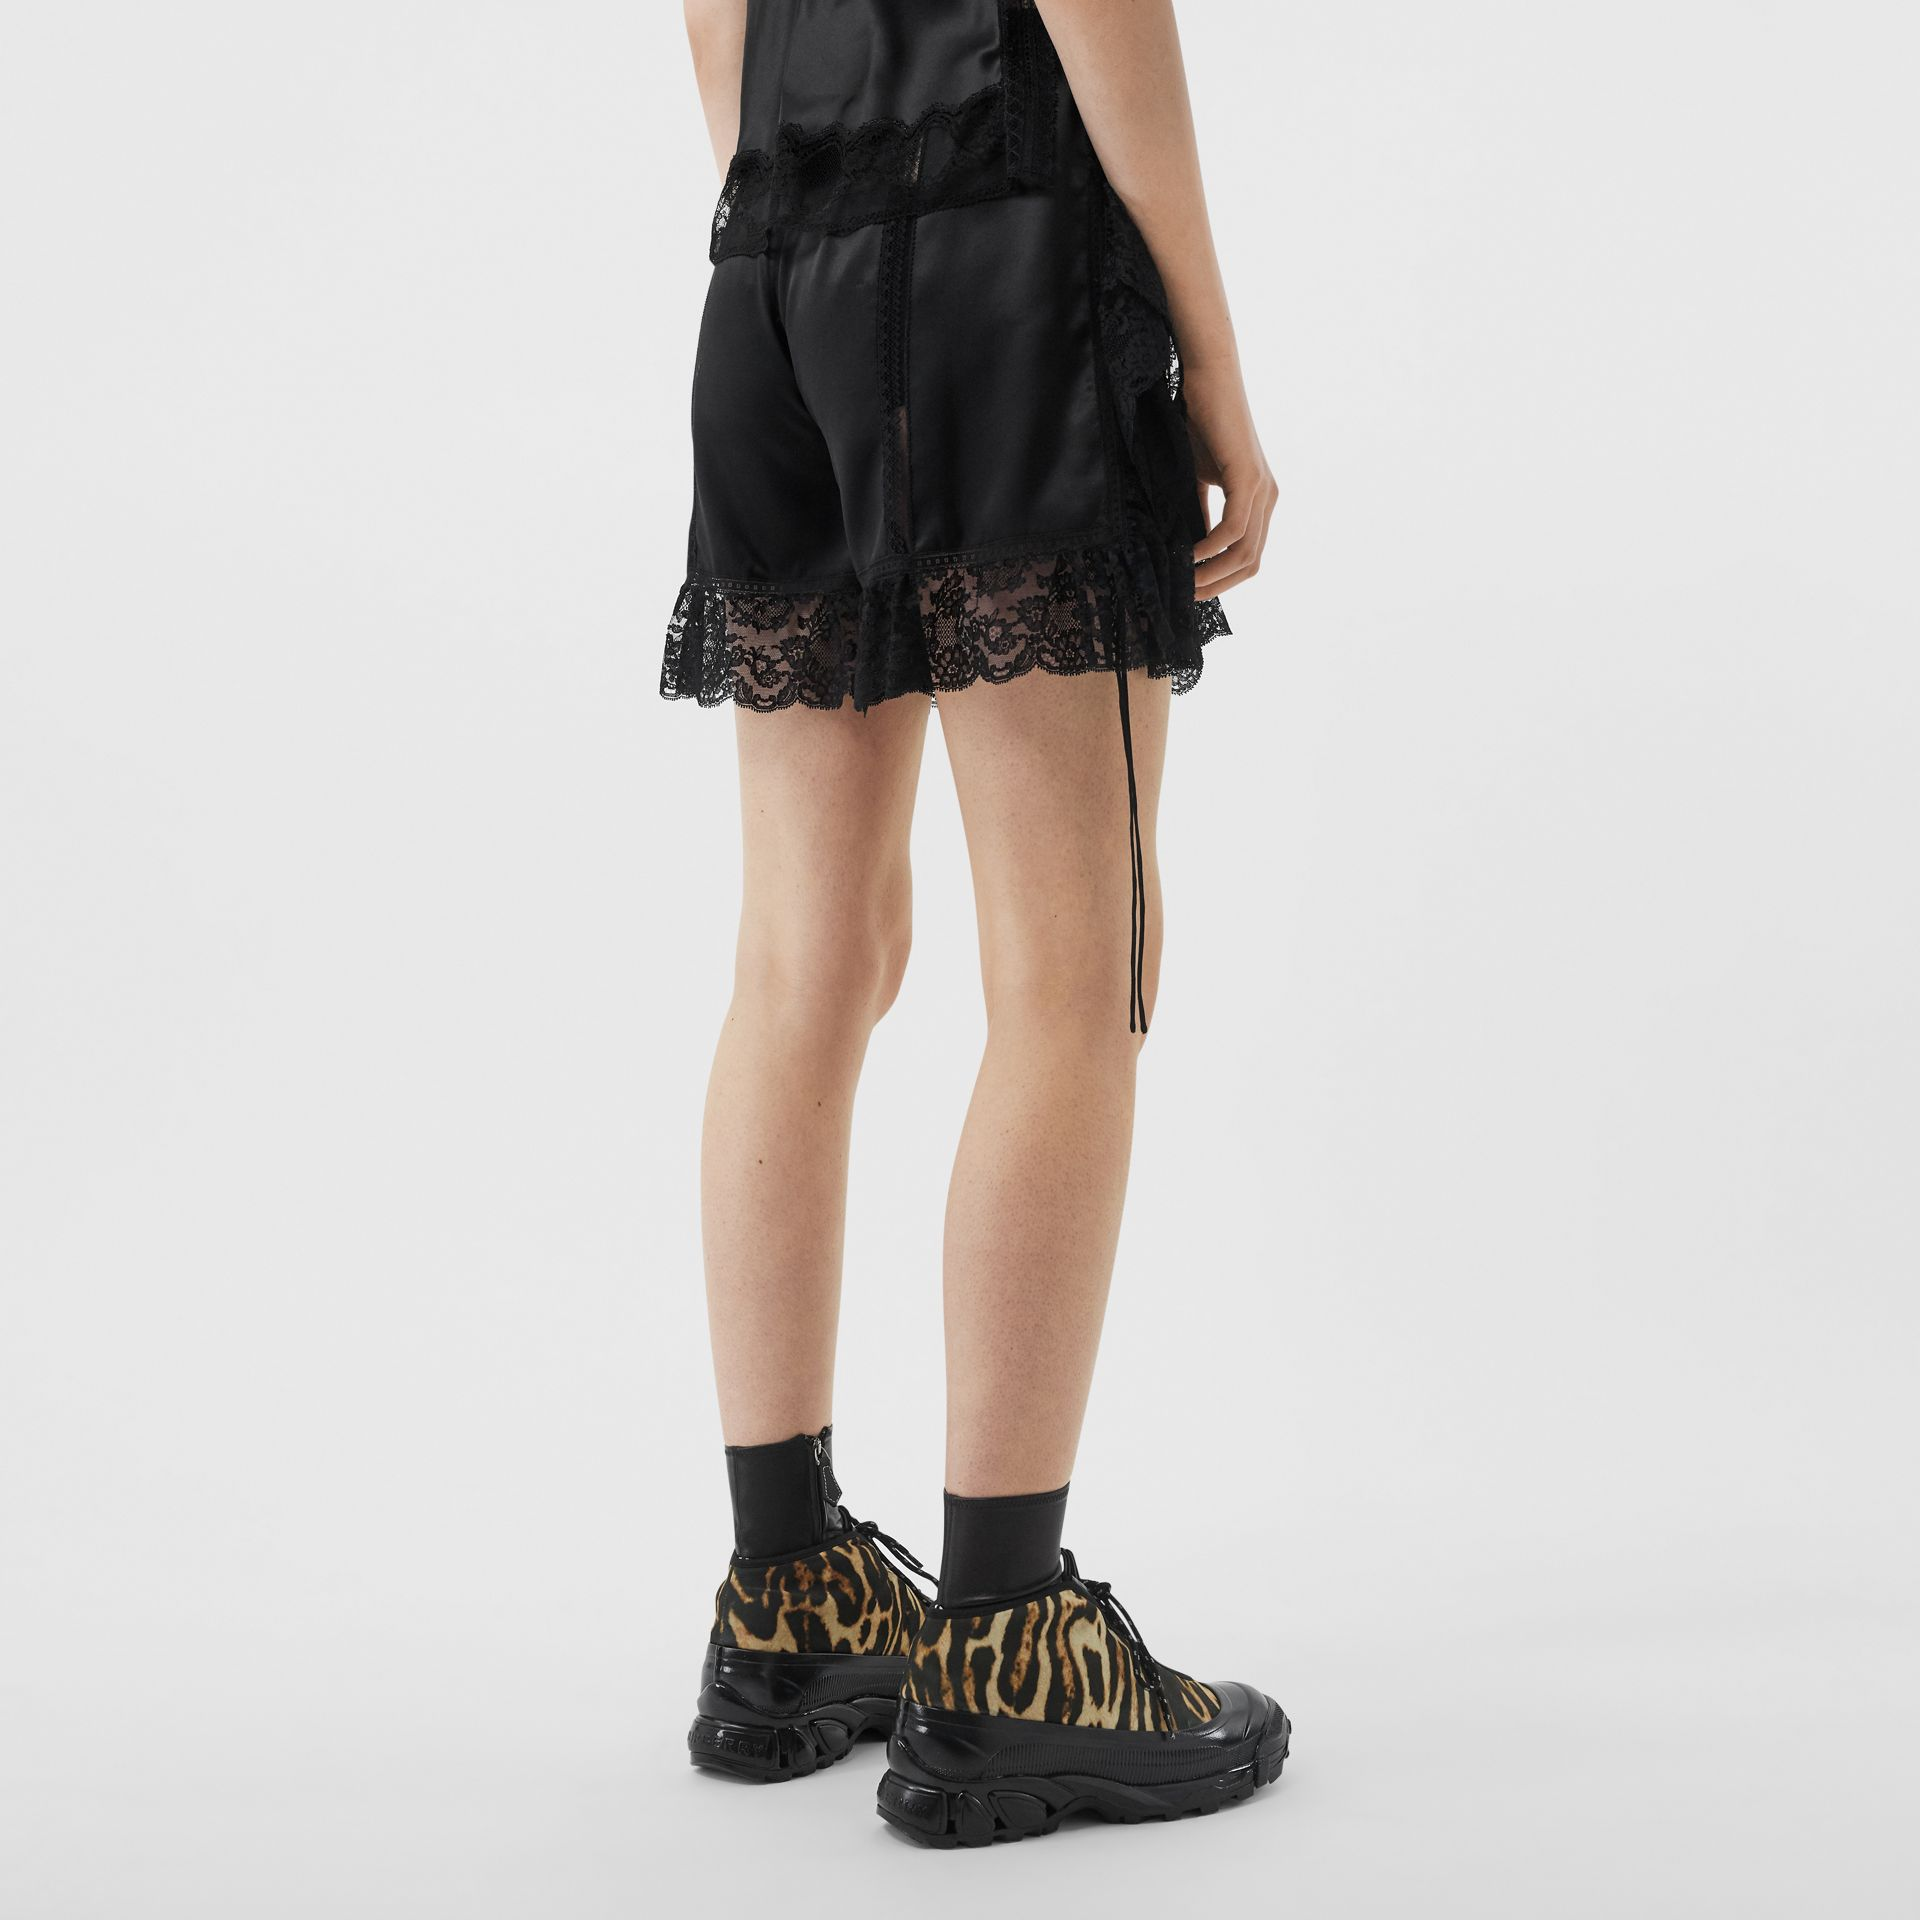 Bottle Cap Detail Satin and Lace Shorts in Black - Women | Burberry United Kingdom - gallery image 2